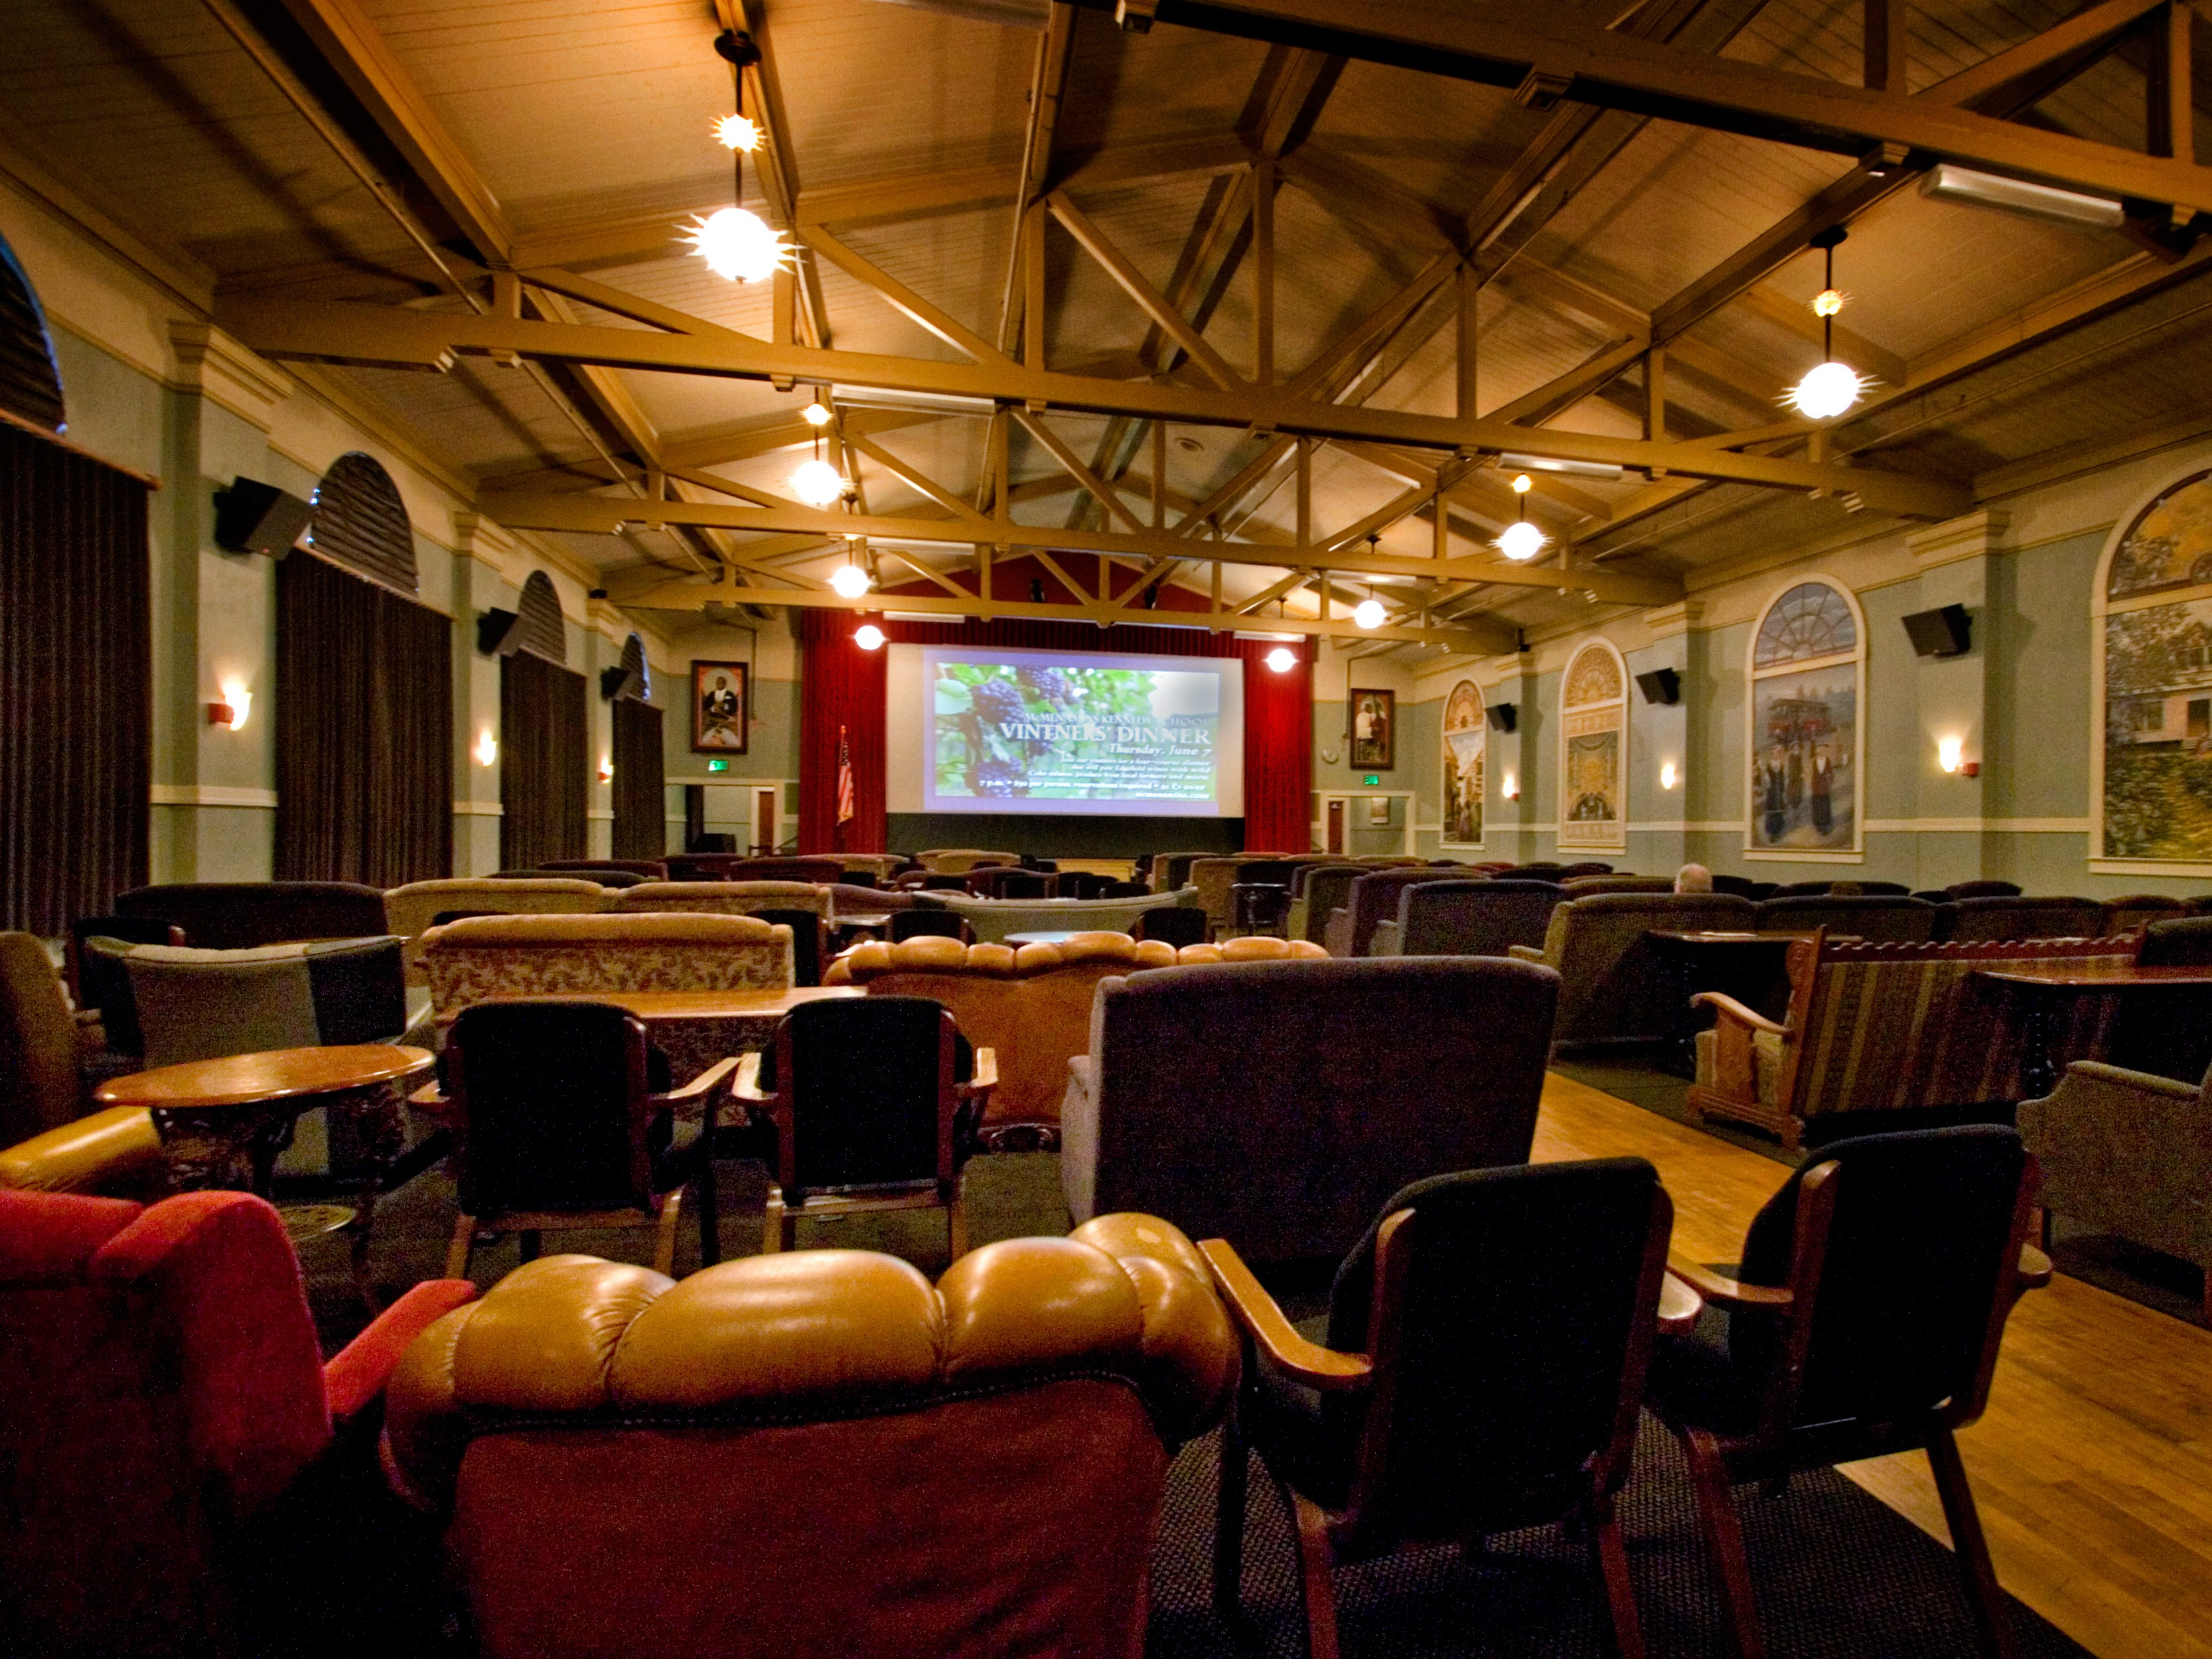 ... Relaxed Movie Theater, Where The Seats Are Vintage Arm Chairs And  Sofas. What Was Once A Space Used For School Assemblies Now Lives On As  Venue For ...